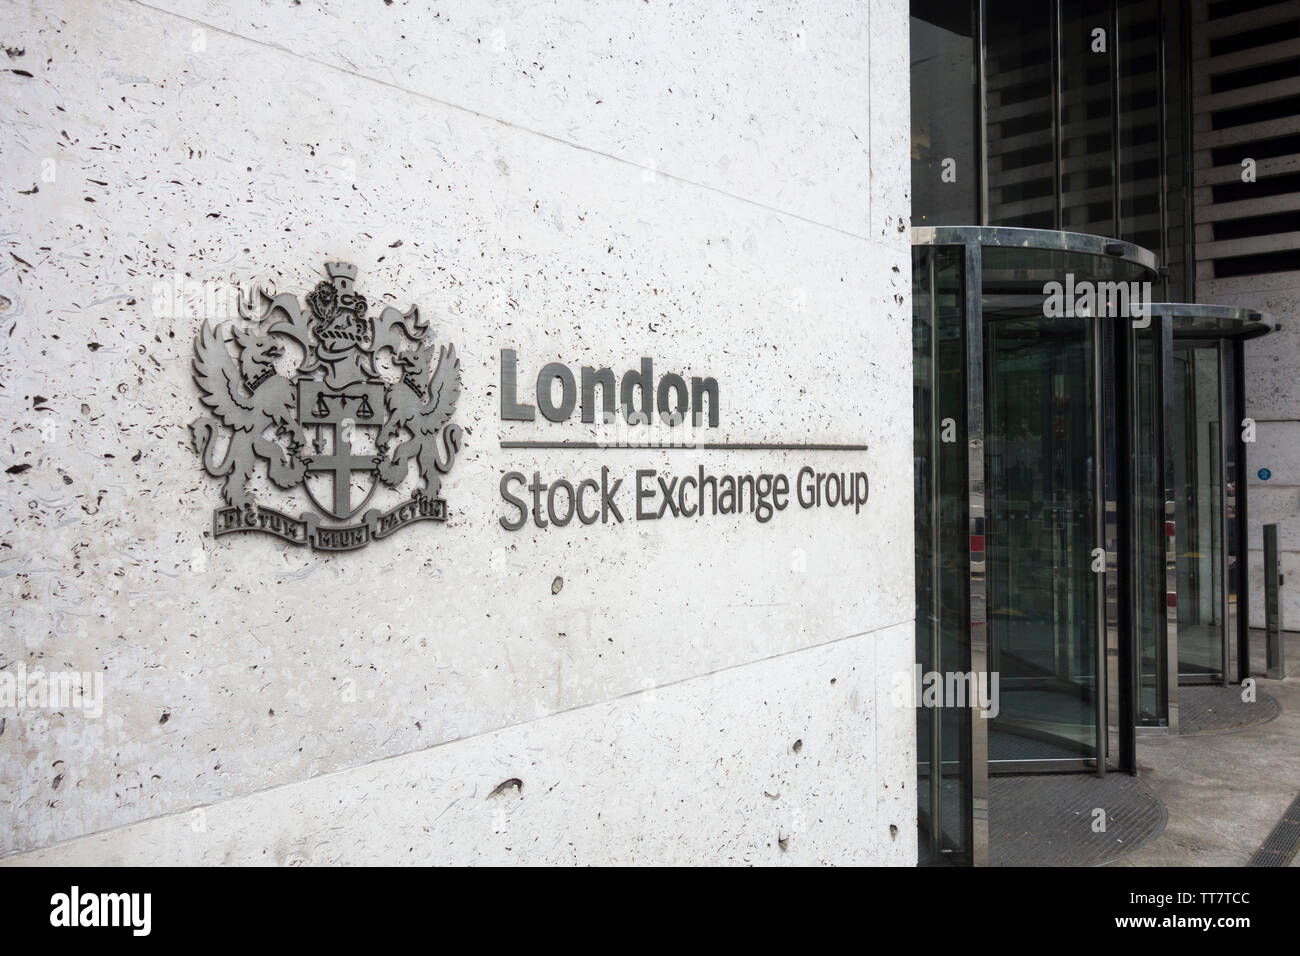 Signage outside the London Stock Exchange coat of arms - My Word is My Bond (Dictum Meum Pactum), outside the LSE on Paternoster Row, London, EC4, UK - Stock Image